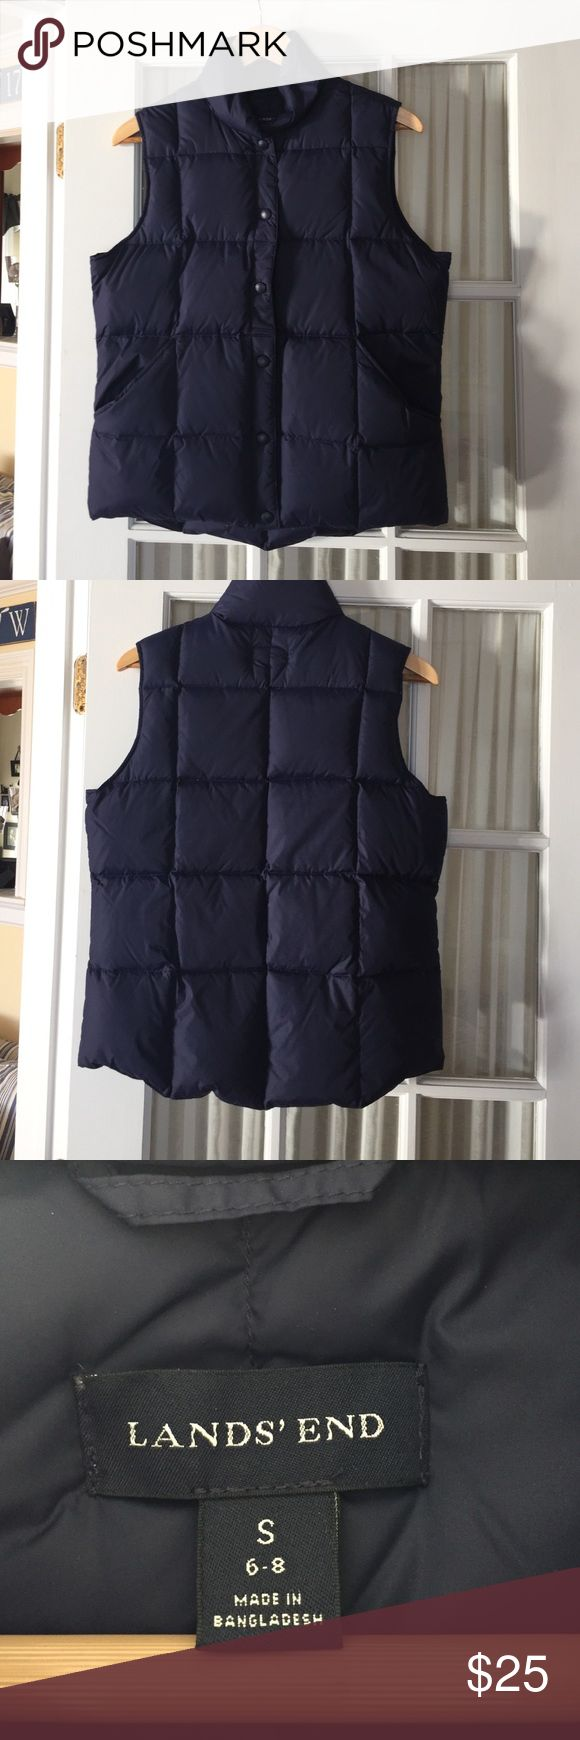 NWOT Lands End Ladies Down Vest Sz S NWOT Lands End Ladies Down Vest. Sz S (6/8). Color- Navy. Lands' End Jackets & Coats Vests